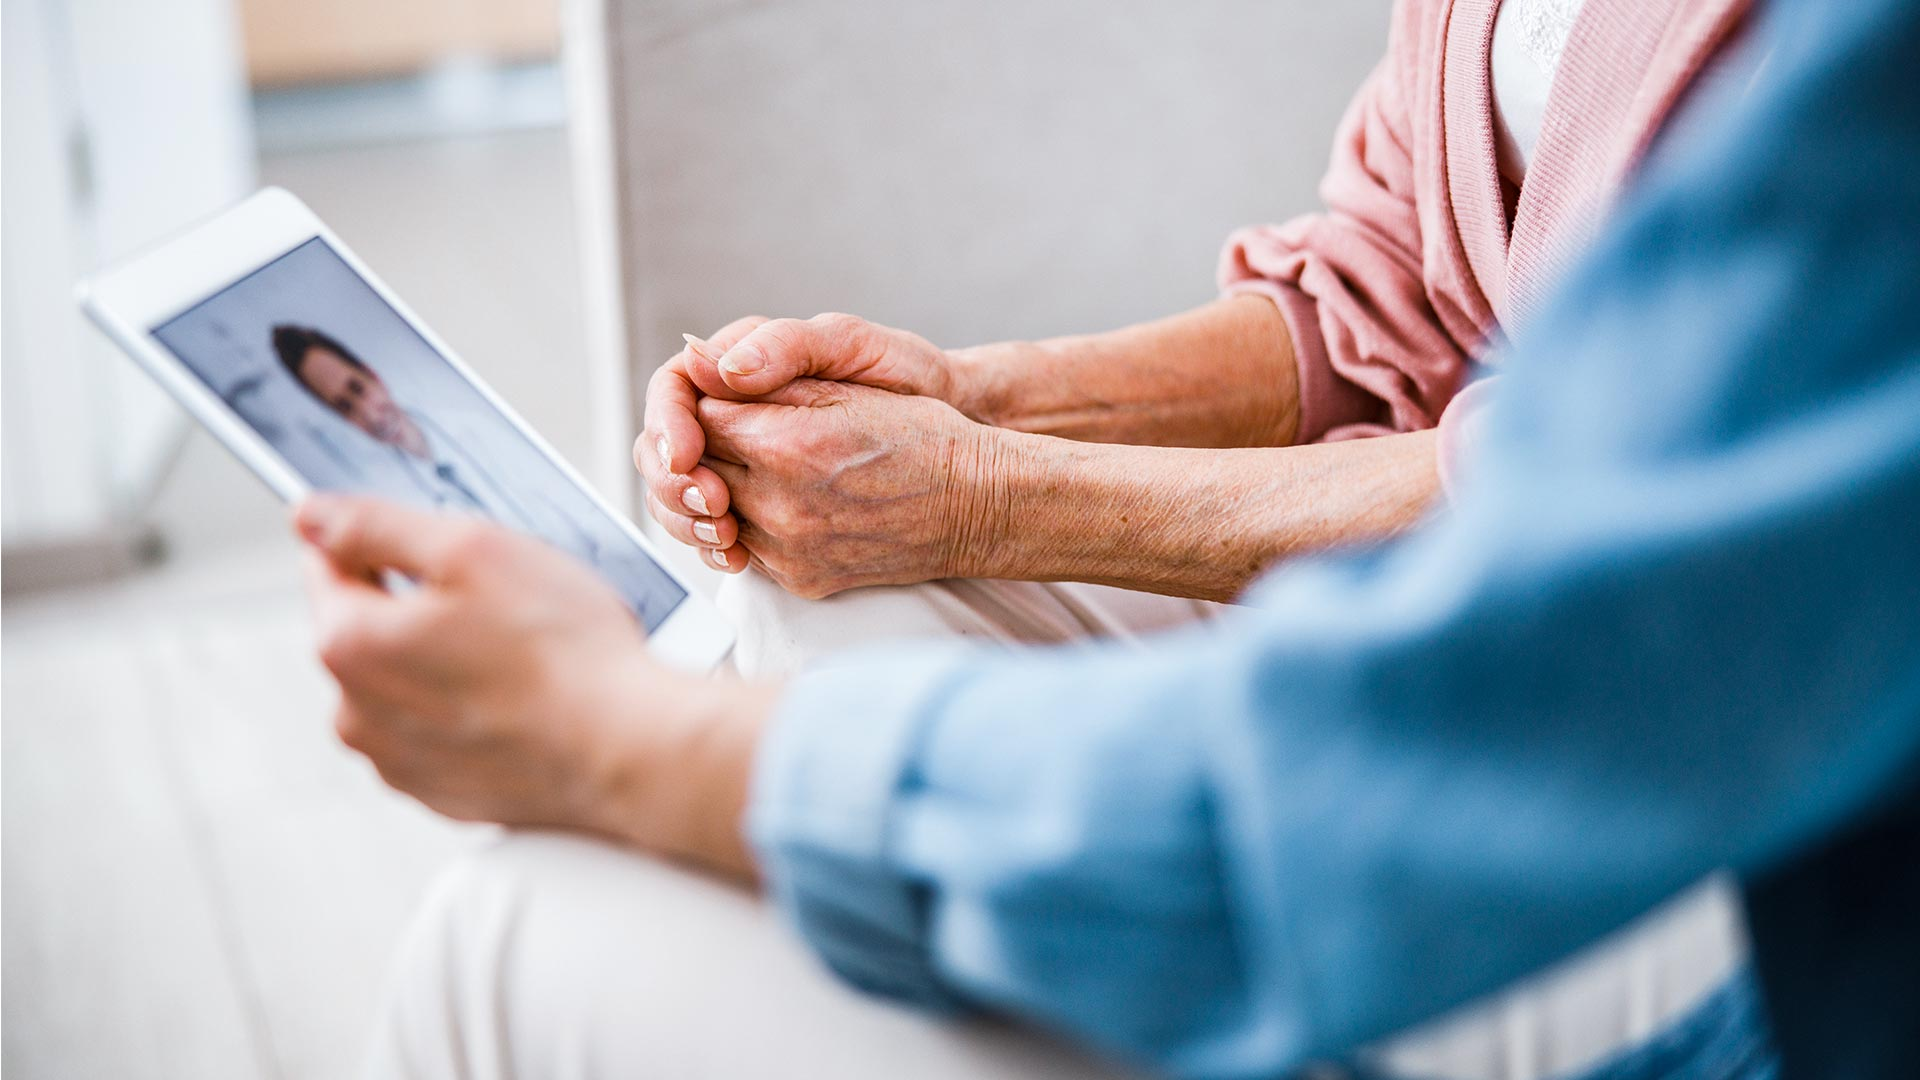 3 Ways To Prepare for a Virtual Doctor Appointment